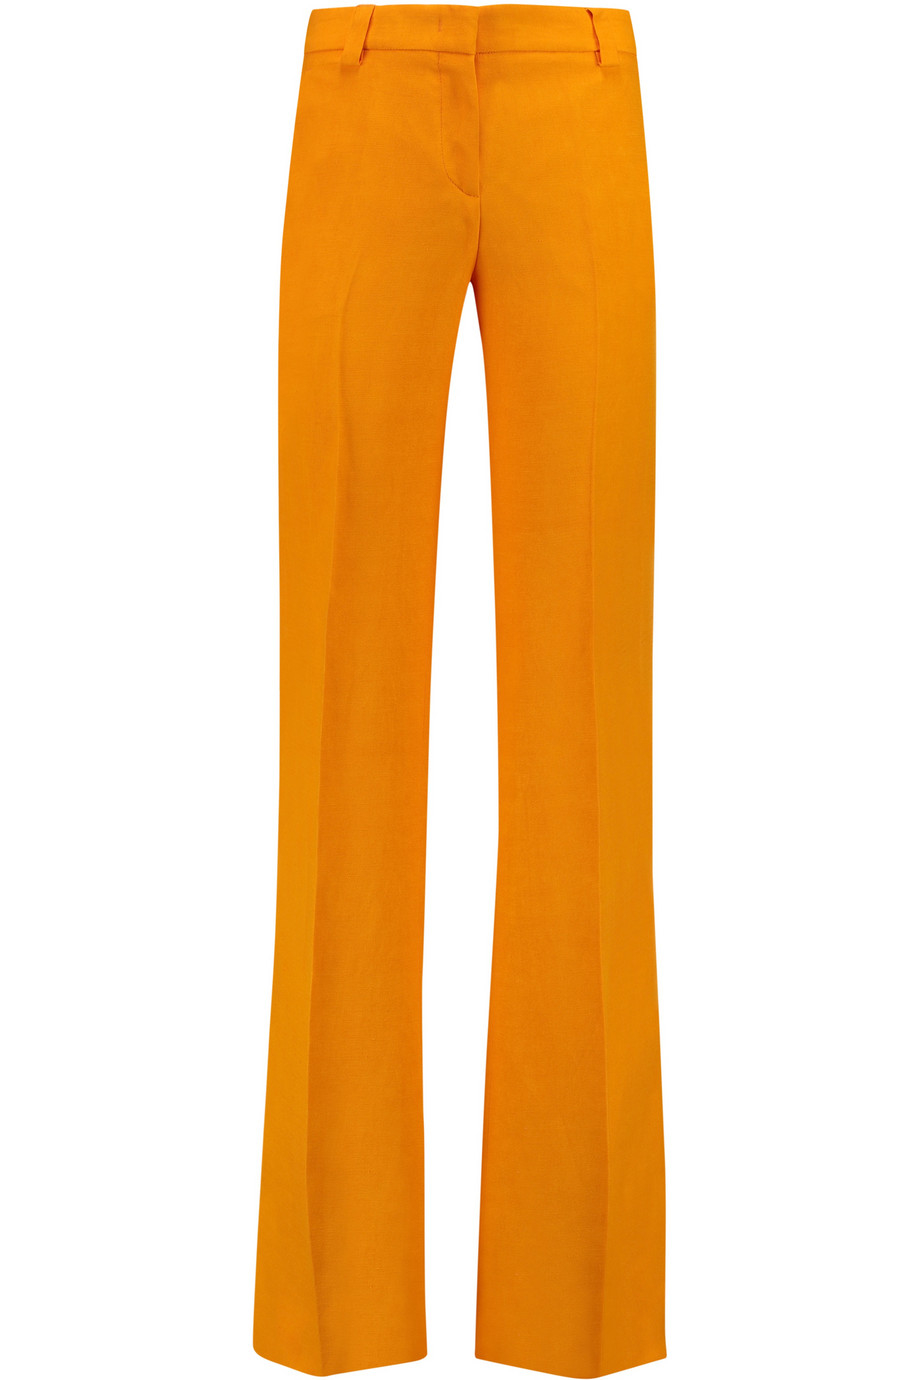 Innovative Womens Orange Basic Skinny Cotton Pants TrousersKorean Fashion Store